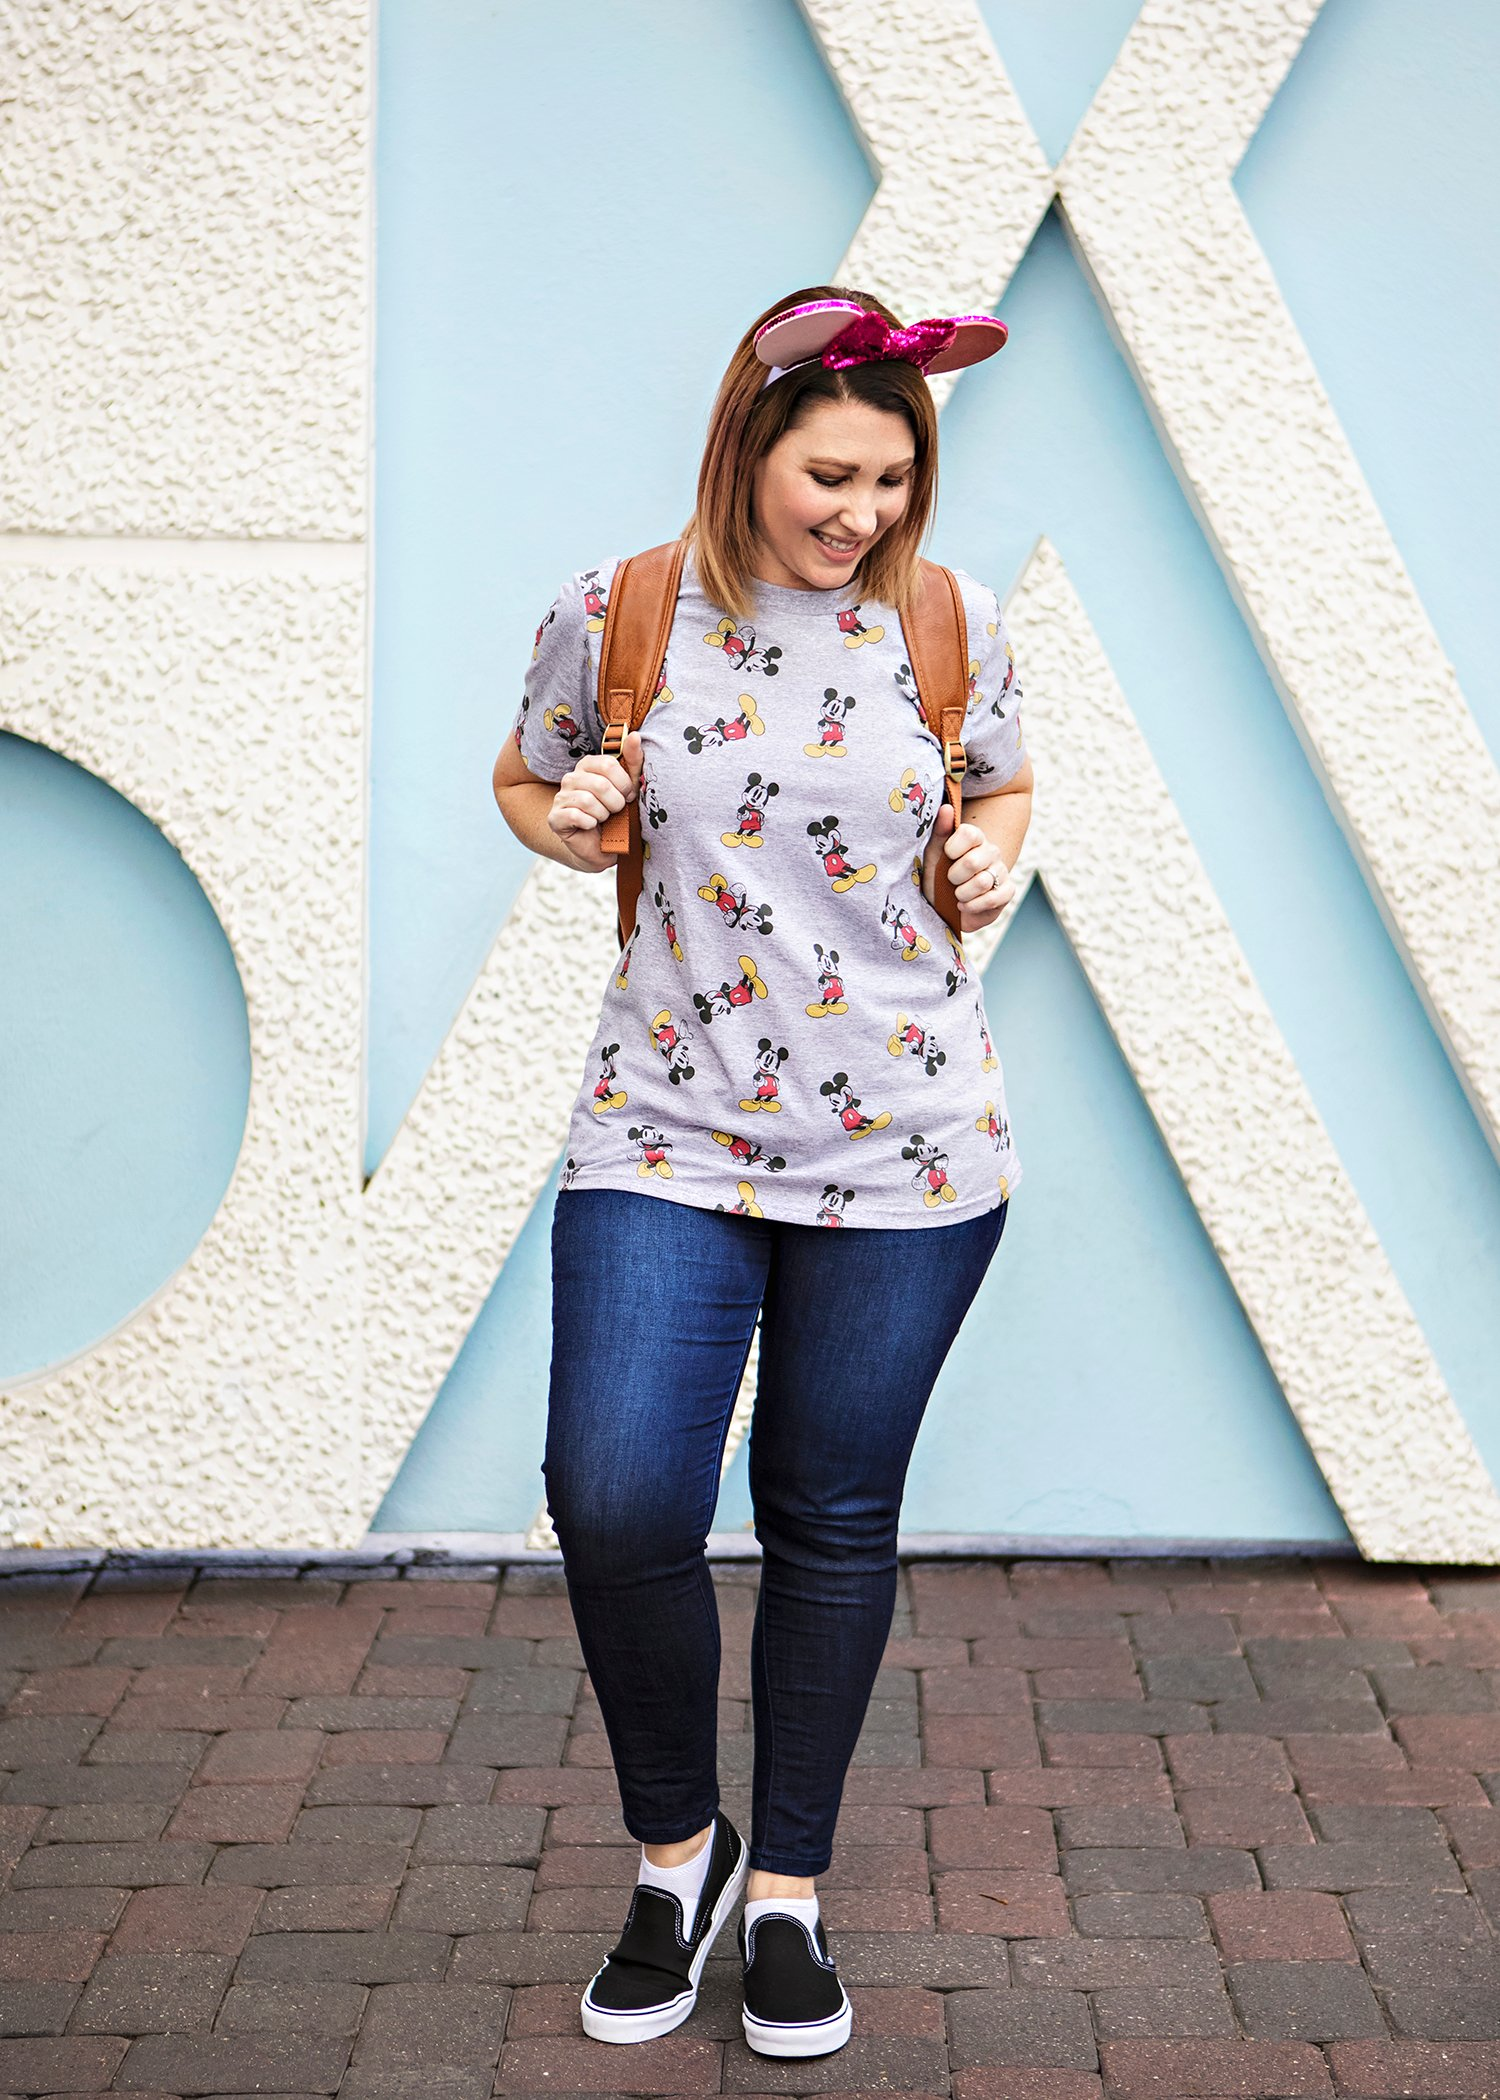 Looking for the perfect Disneyland outfits for spring? Pin this to remember what to wear to Disneyland in warm weather!